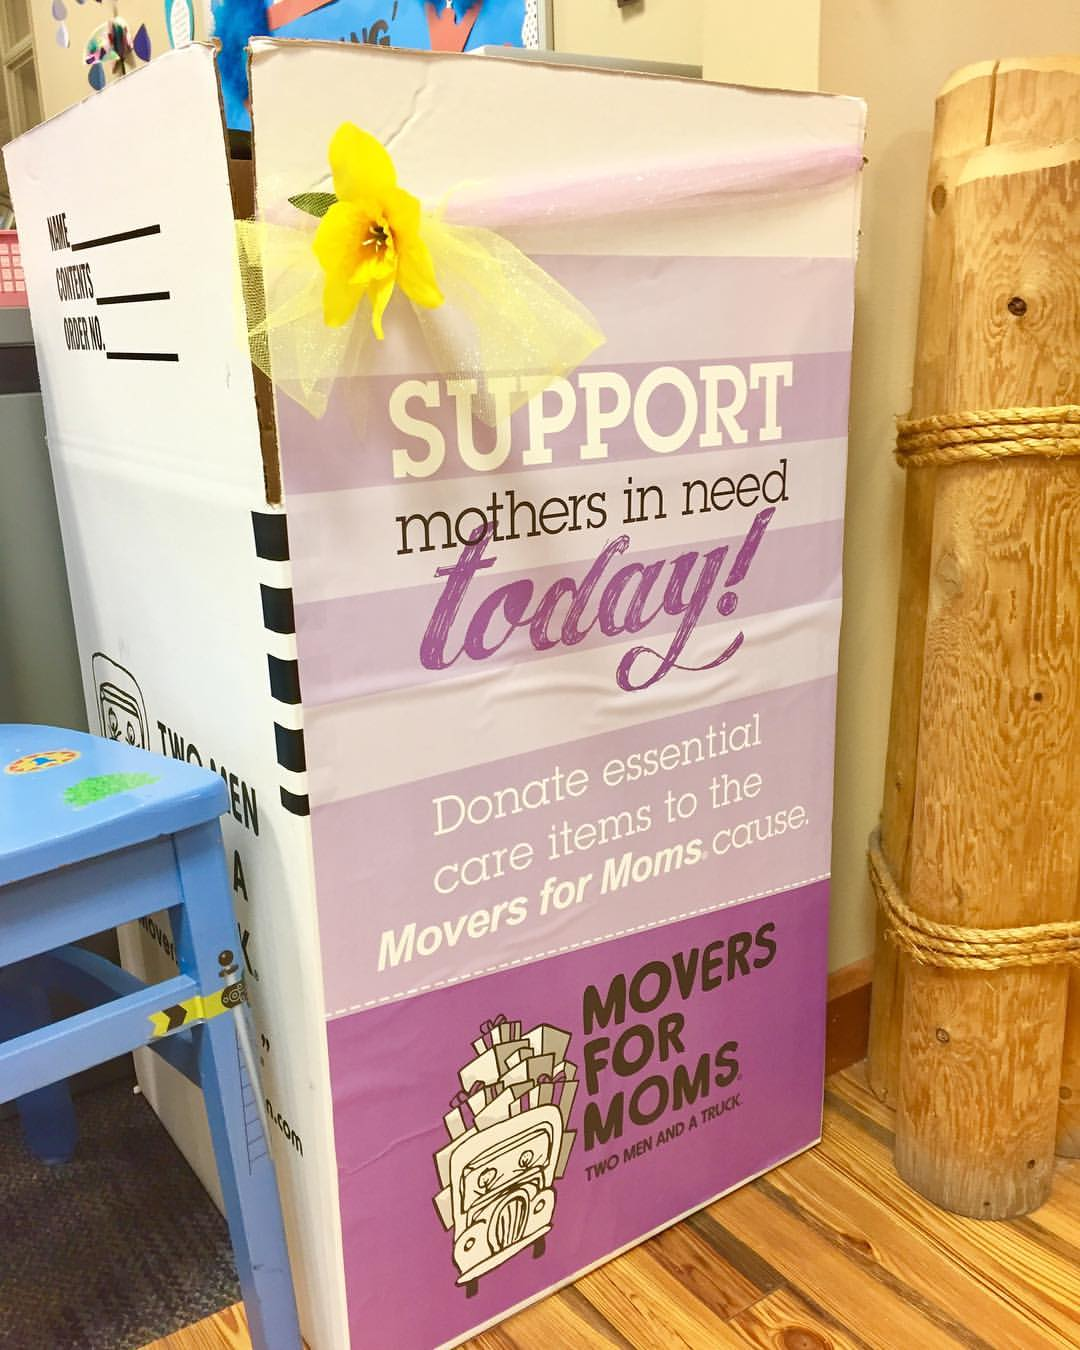 The Movers for Moms donation box at Pewaukee Public Library